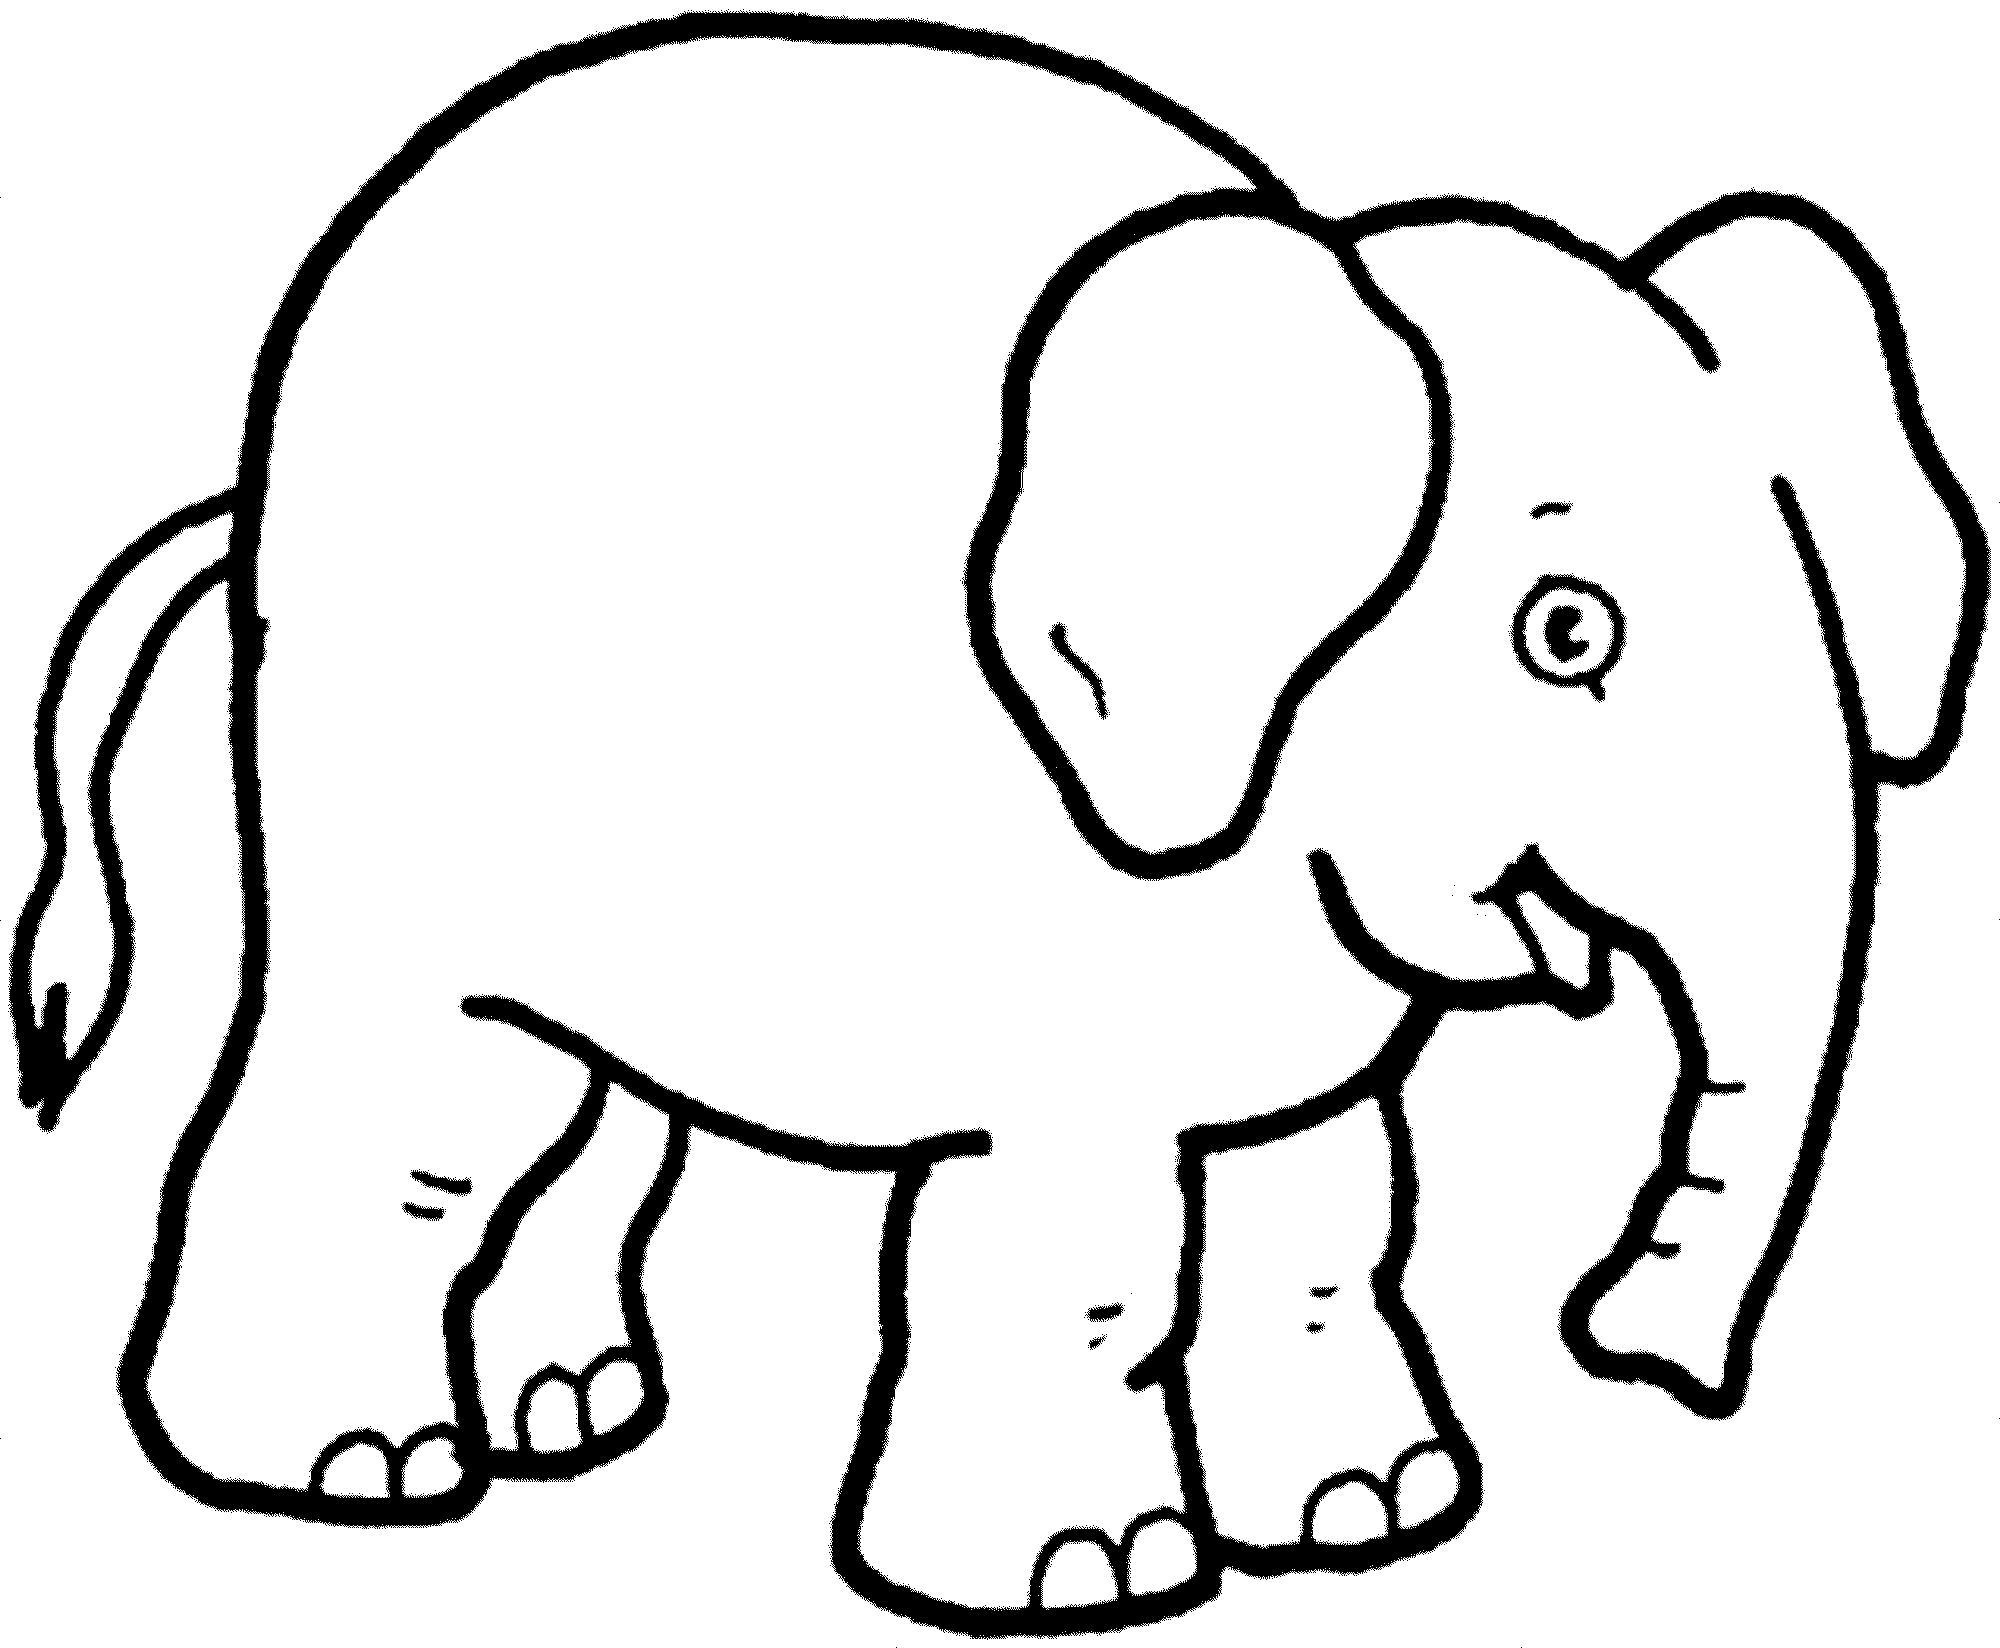 coloring book elephant images elephants for children elephants kids coloring pages elephant coloring book images